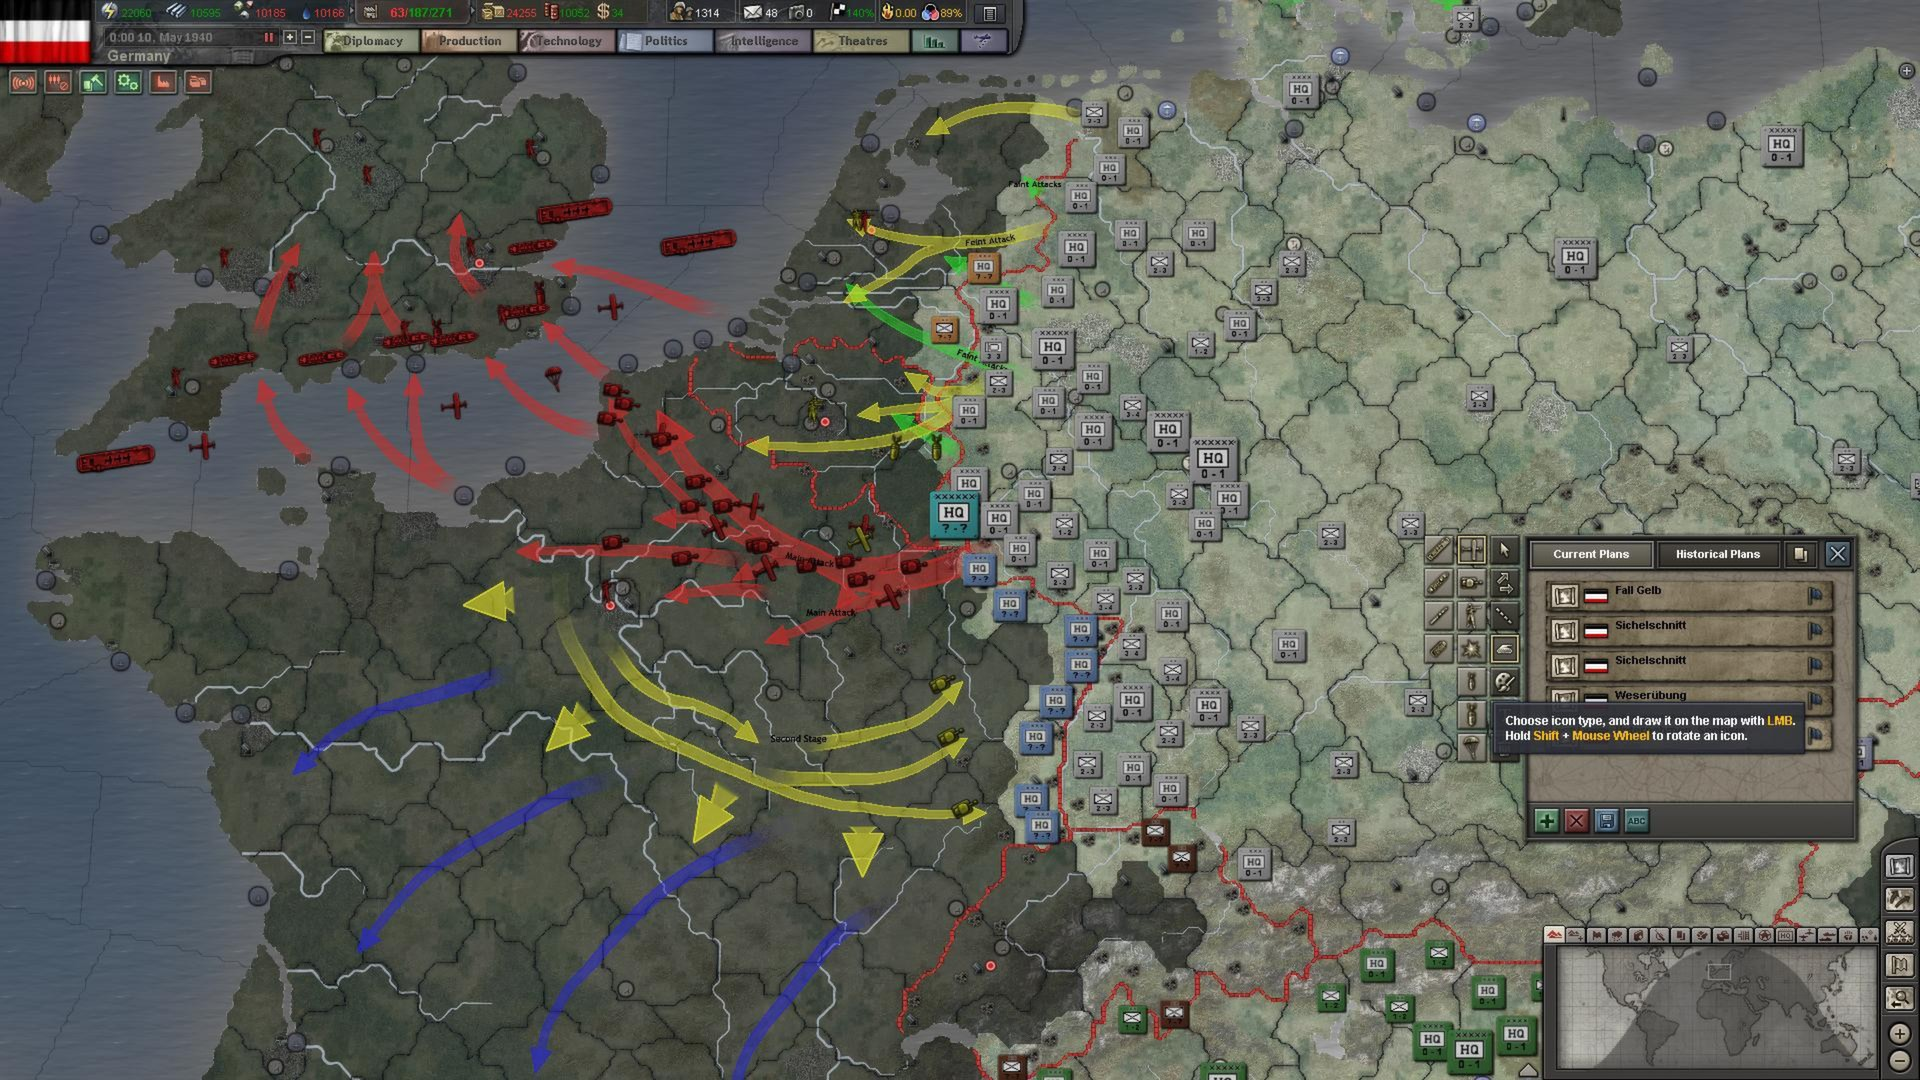 Hearts of Iron III Their Finest Hour on Steam 1920x1080